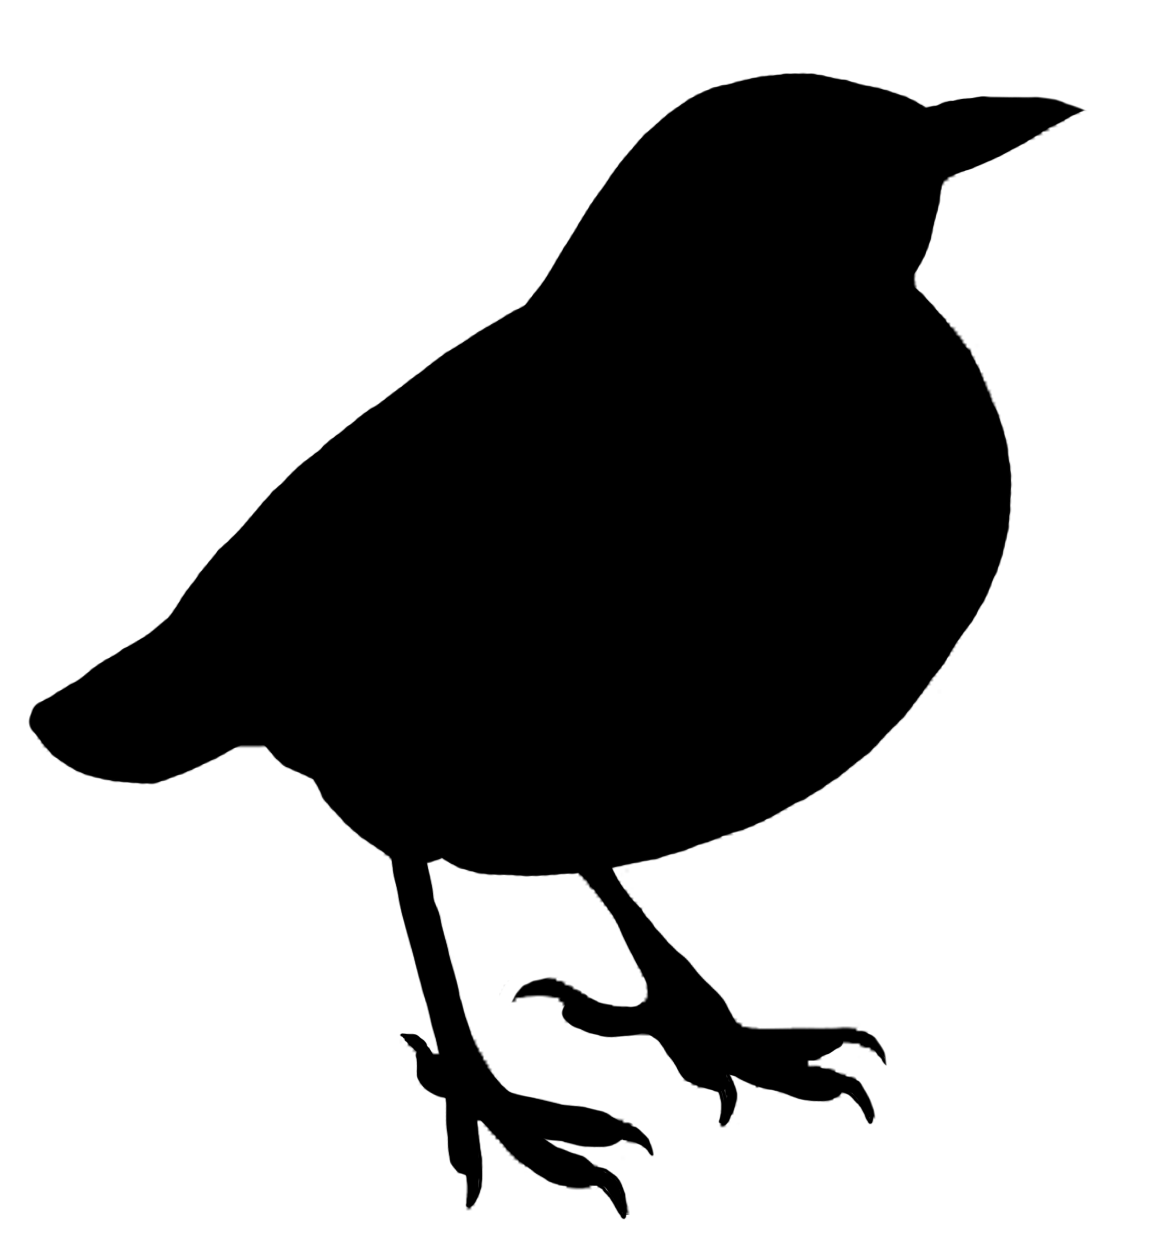 1156x1256 Bird Silhouette Clipart Transparent Png